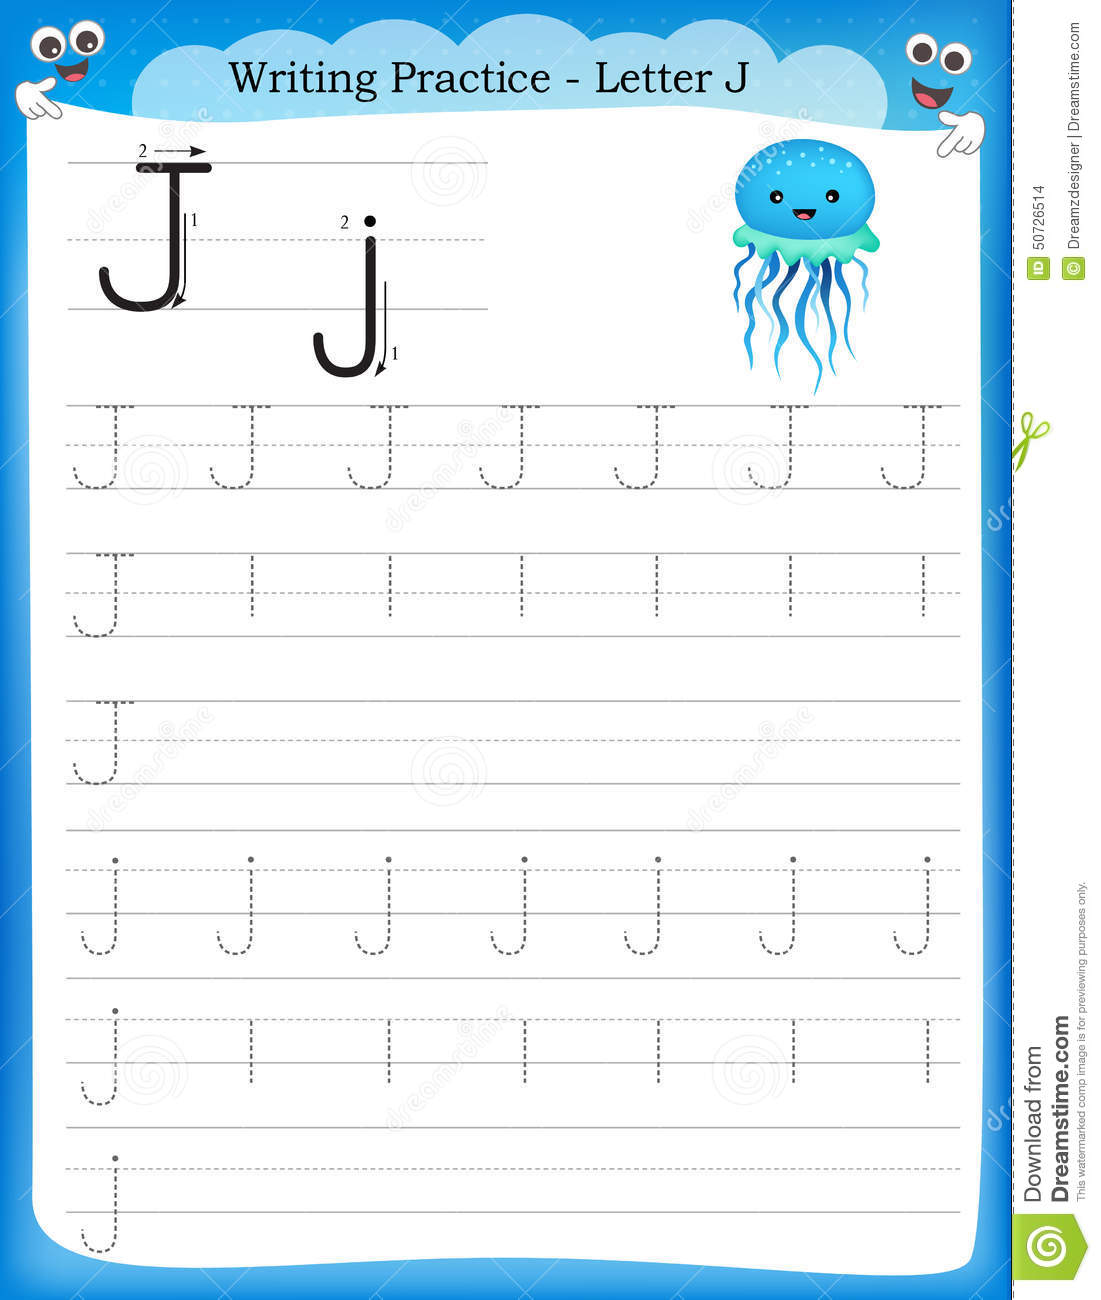 ... Management Writing Practice Letter J Printable Worksheet For Preschool